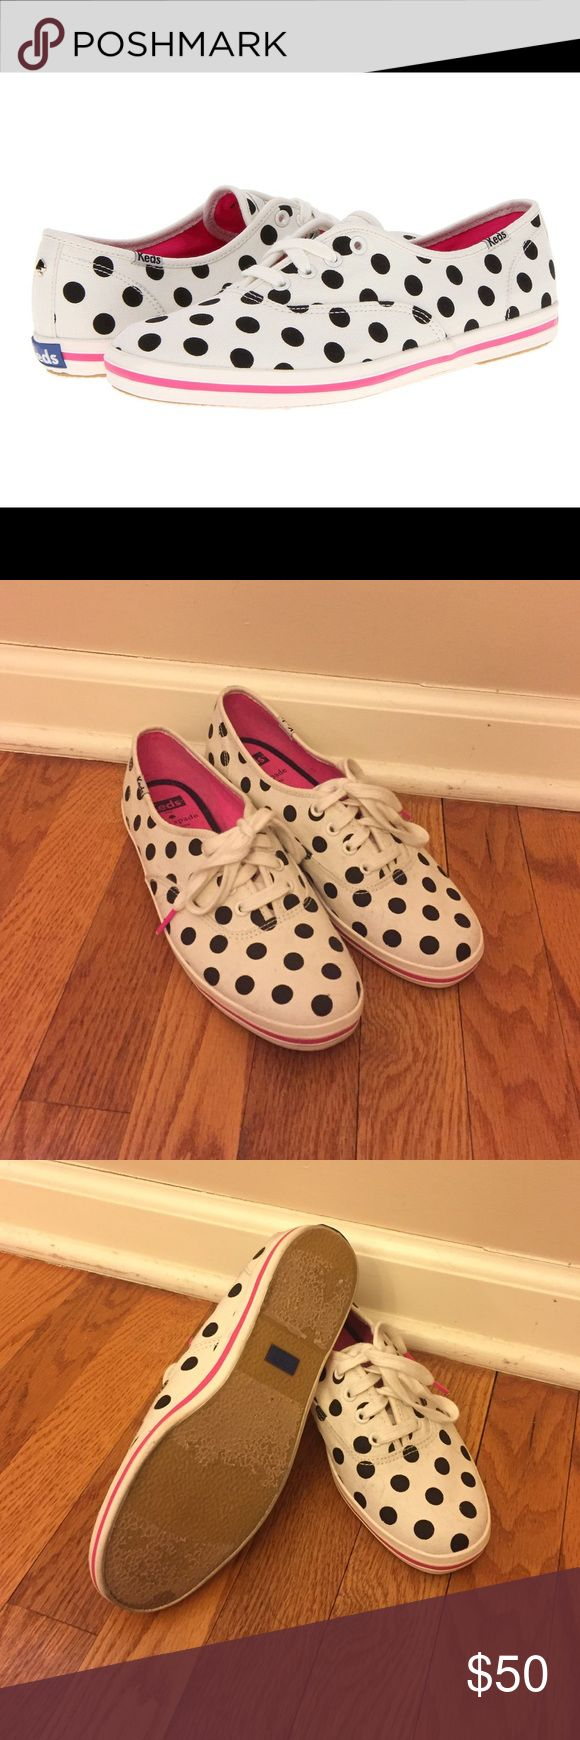 Kate Spade for Keds Kate Spade never worn keds sneakers. Some discoloration on the soles.  These Keds for Kate Spade New York sneakers are patterned in playful polka dots and trimmed with bright aglets. Lace-up closure and striped rubber sidewall. Crepe sole. kate spade Shoes Sneakers